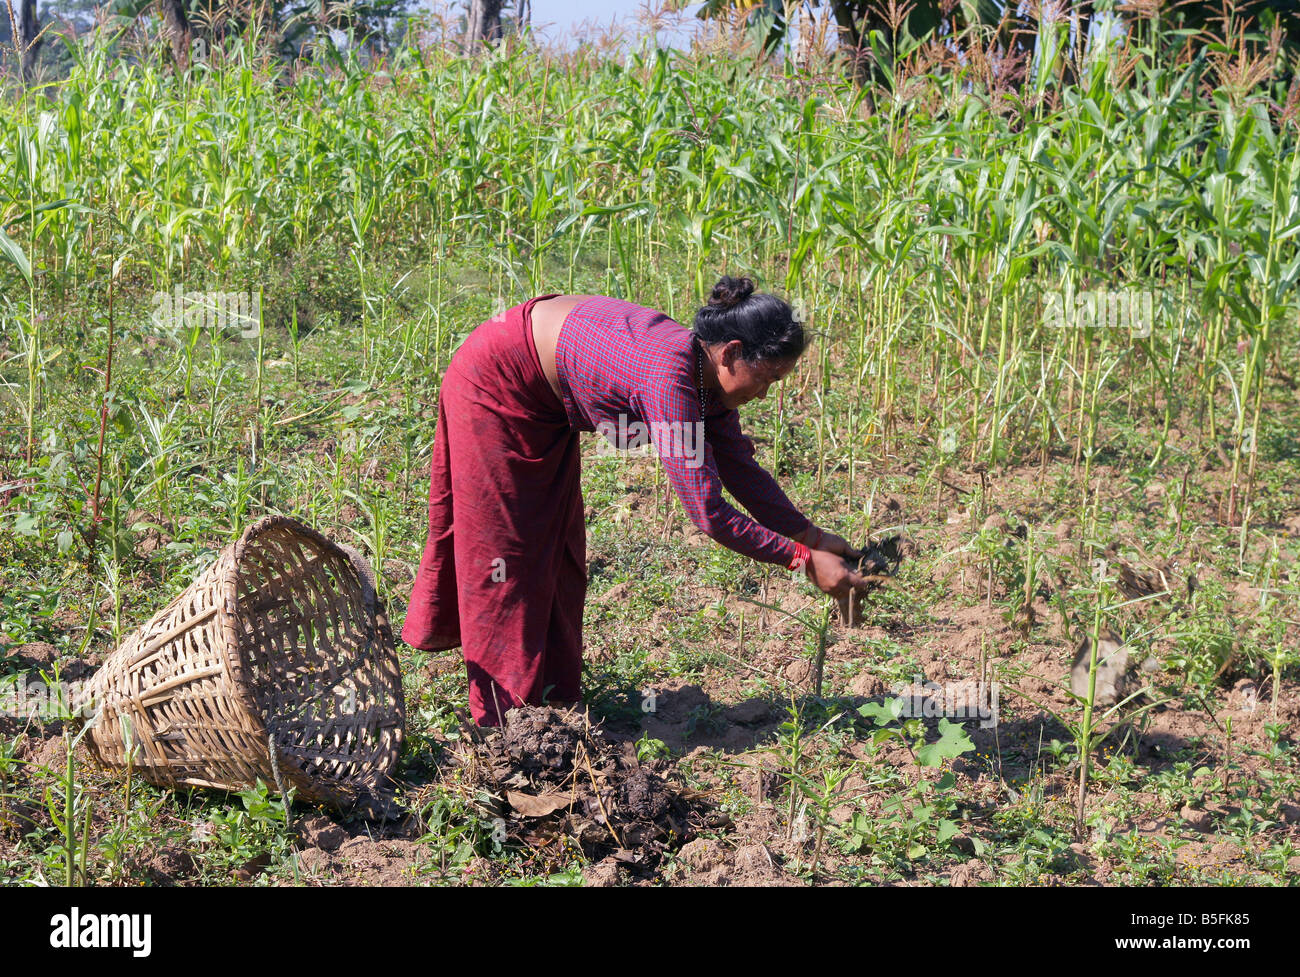 Nepal, farmer applies cow´s dung as a fertilizer on her field - Stock Image